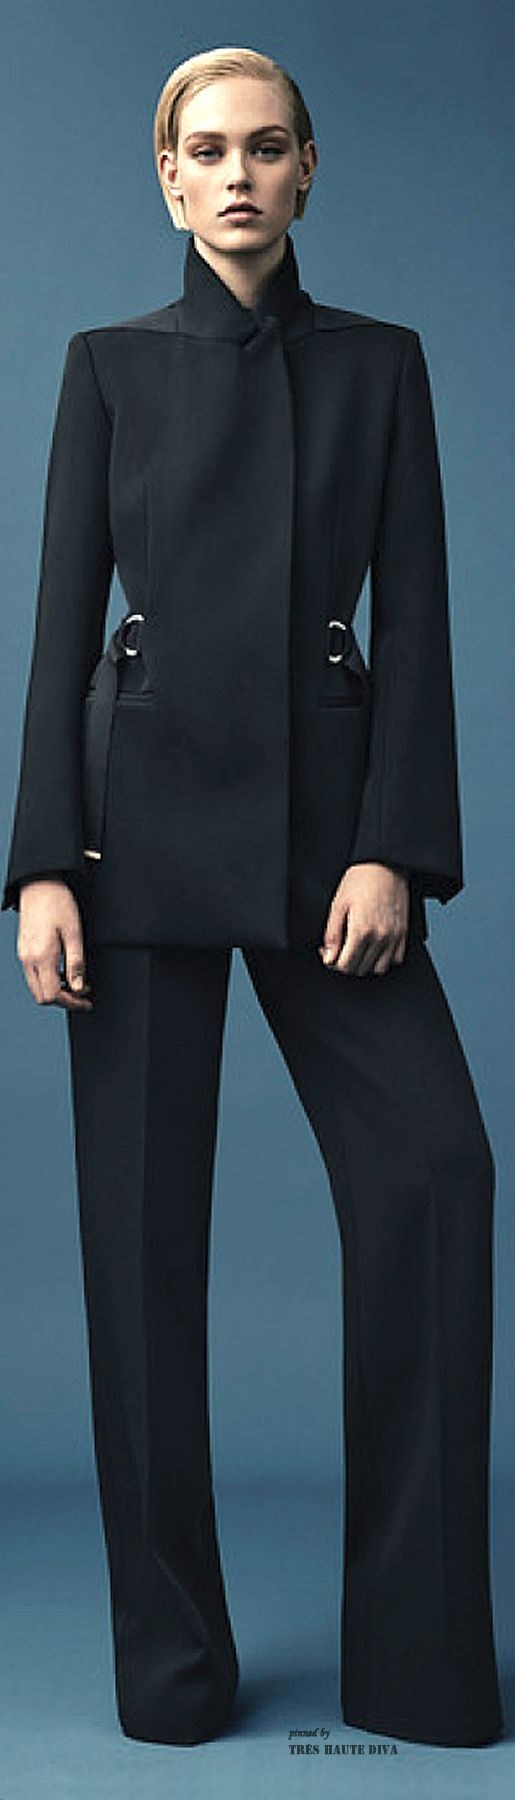 Mugler Resort 2015.... not sure if it's not too harsh looking? On the fence.